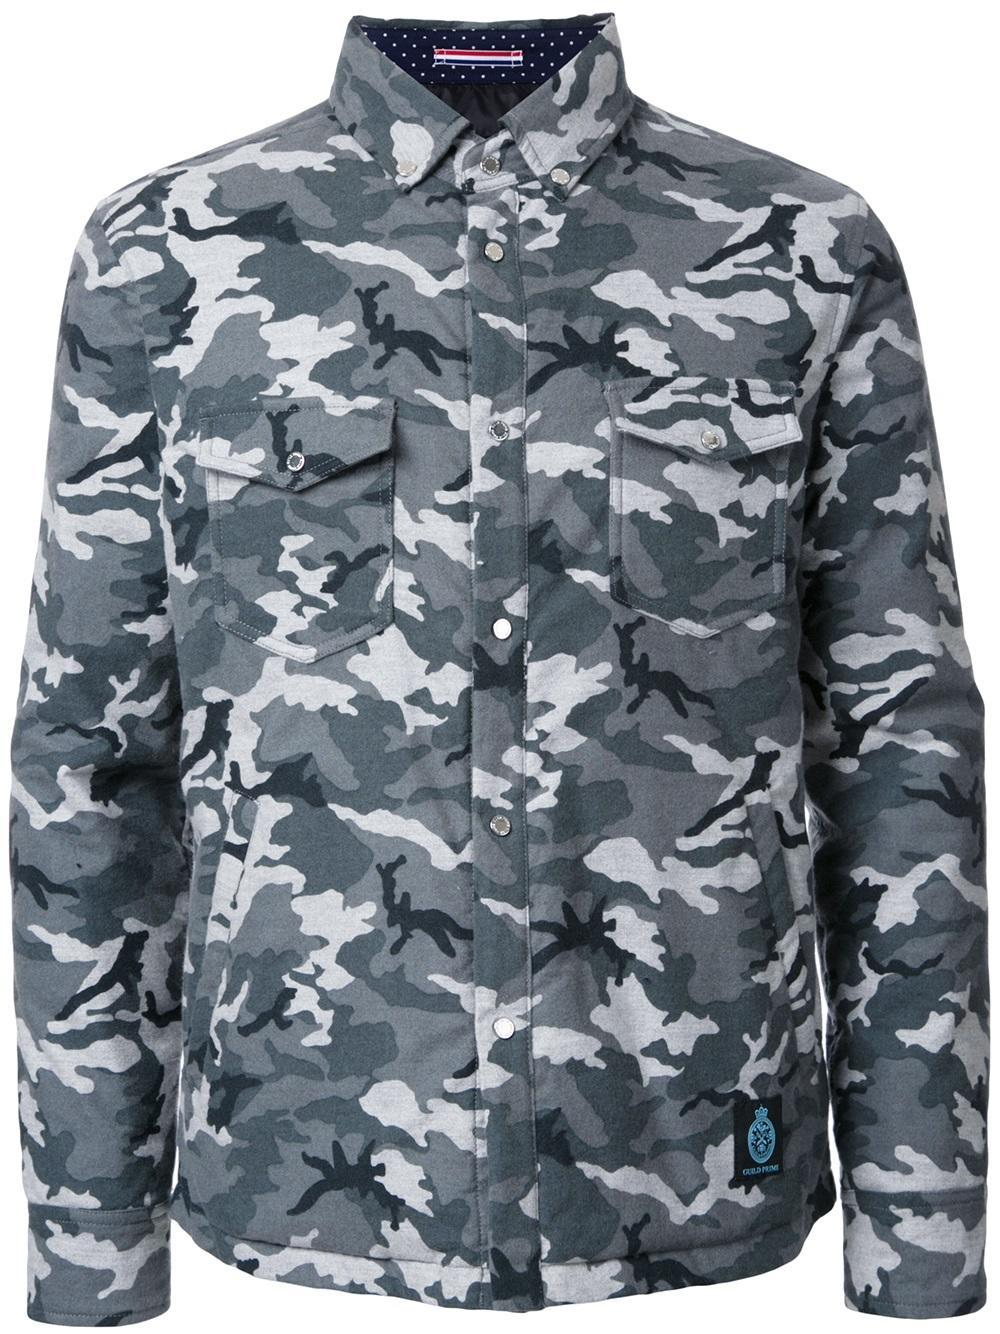 Guild Prime Camouflage Padded Shirt Jacket In Gray For Men